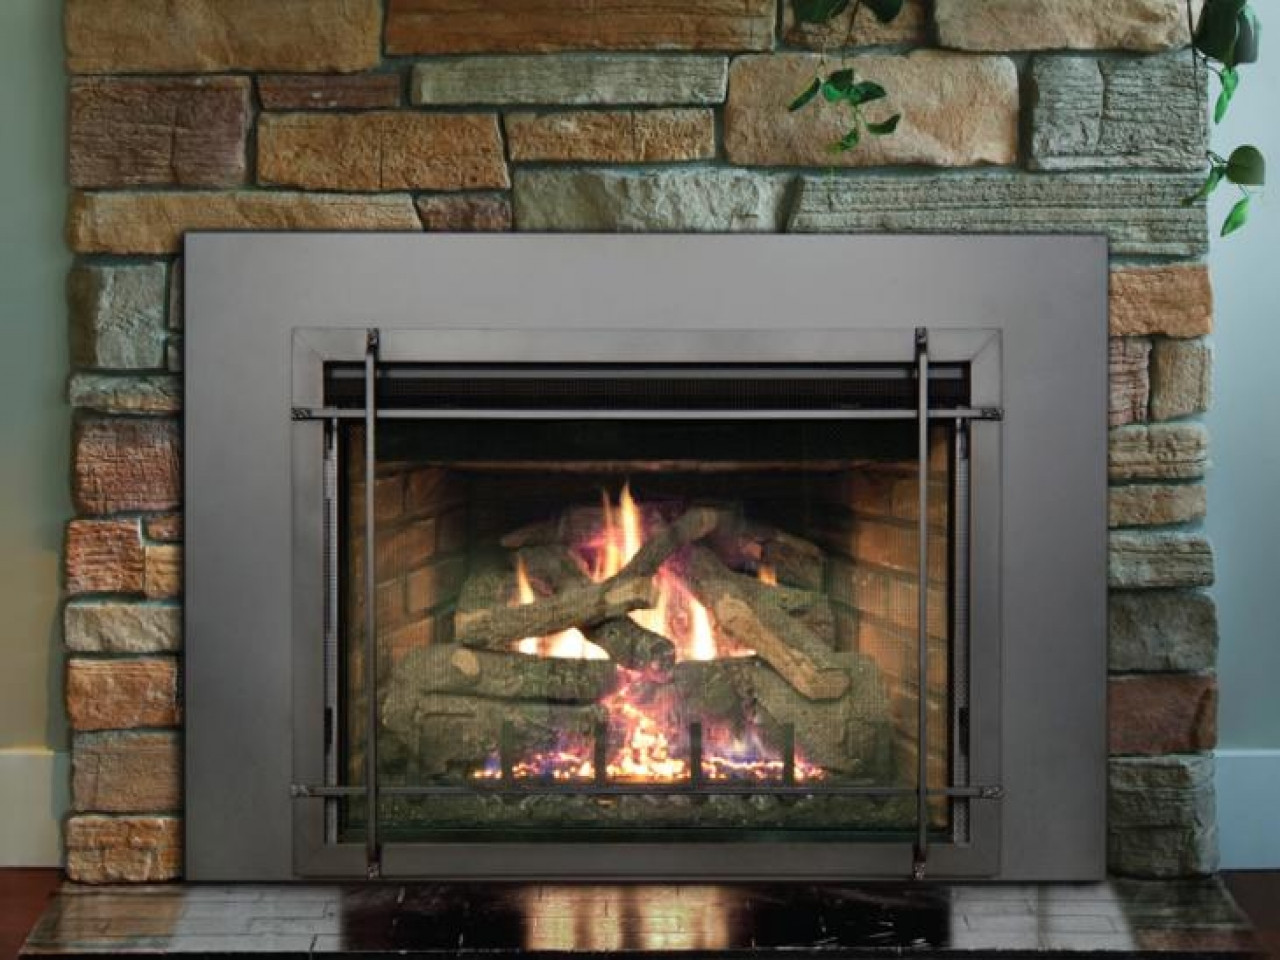 Best ideas about Vent Free Gas Fireplace Insert . Save or Pin Gas fireplace insert direct vent fireplace installation Now.